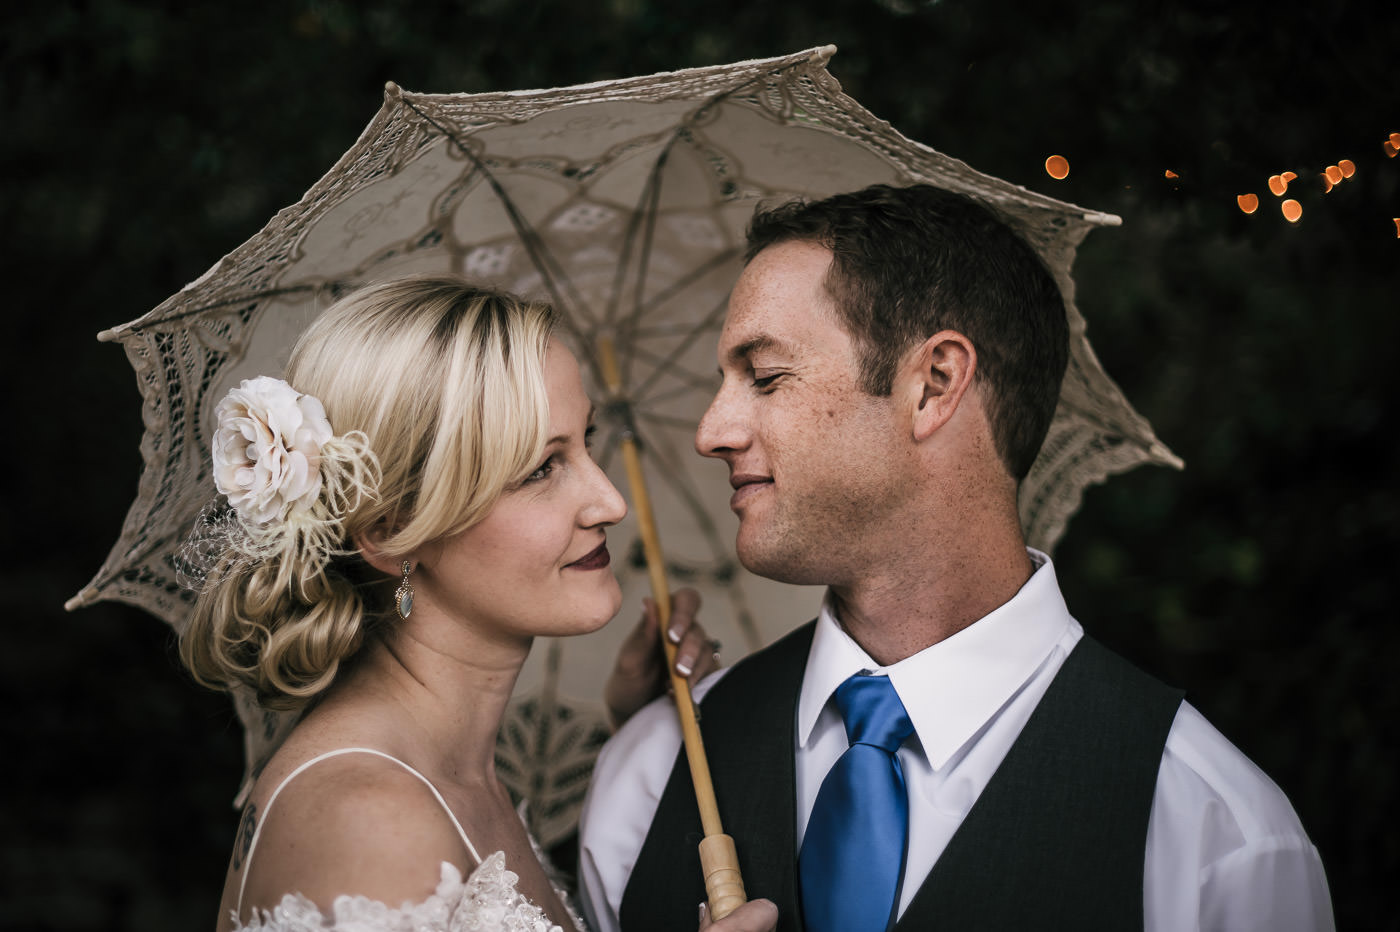 romantic wedding photographer takes intimate portraits of a loving couple at their whispering oaks terrace wedding in temecula california